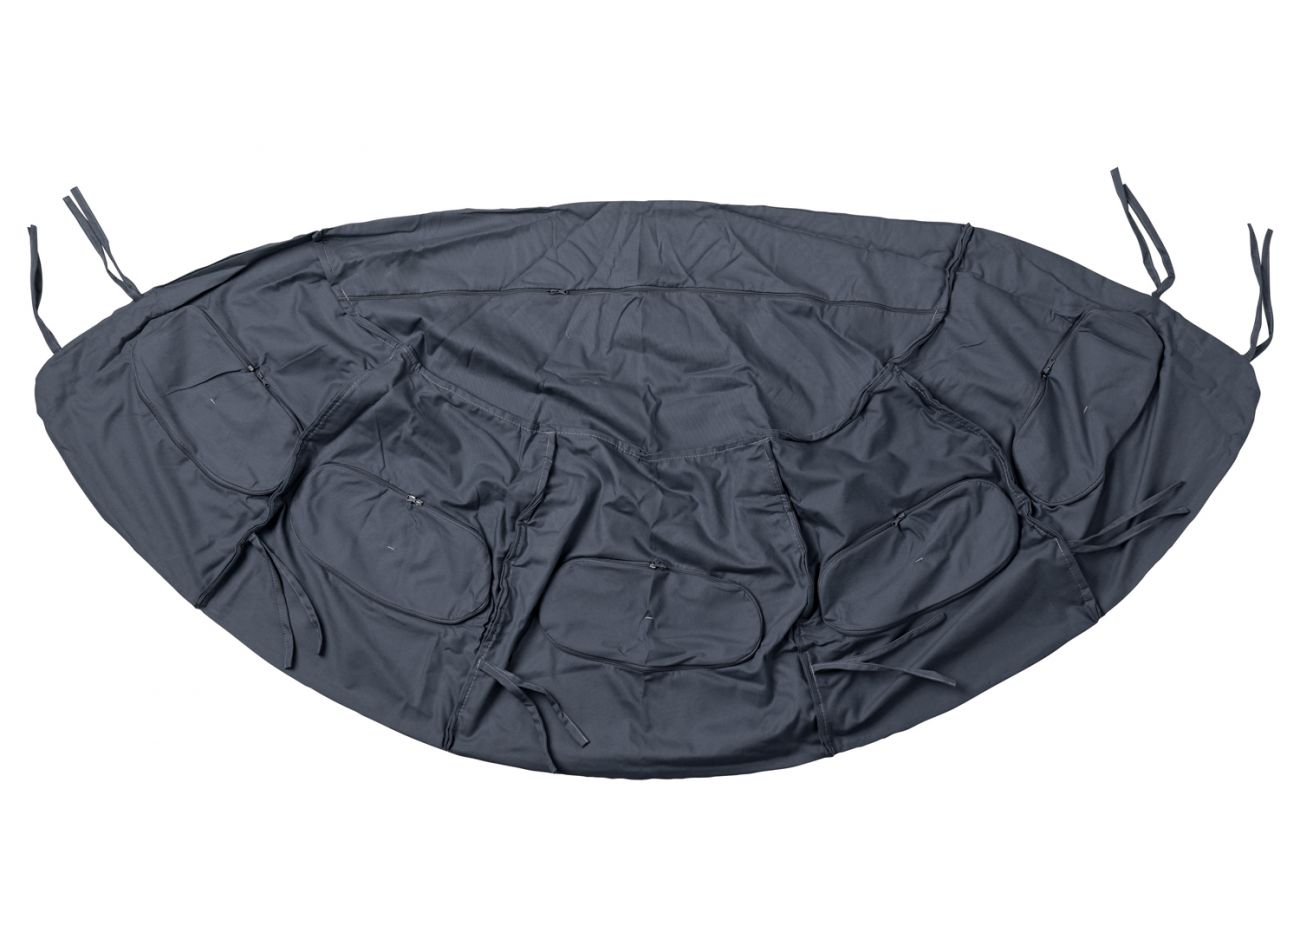 Pillowcase Globo Anthracite